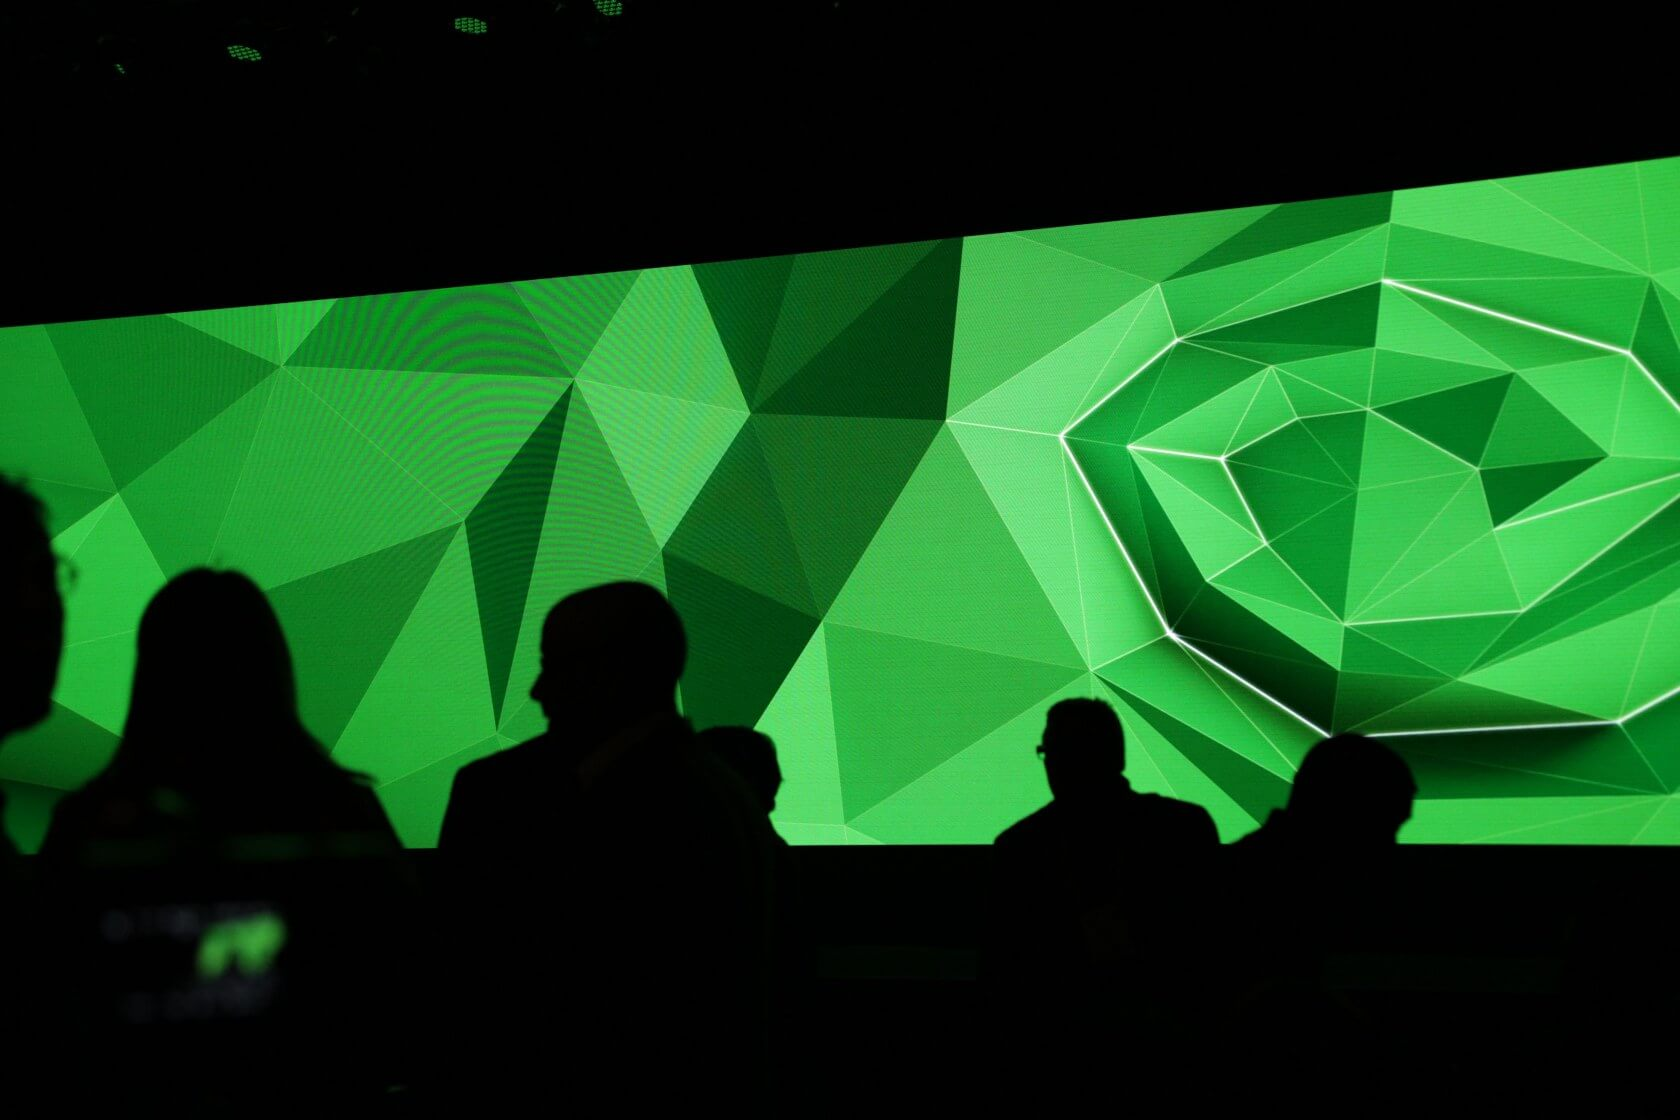 Nvidia CEO Jensen Huang won't deliver his annual GTC keynote this year